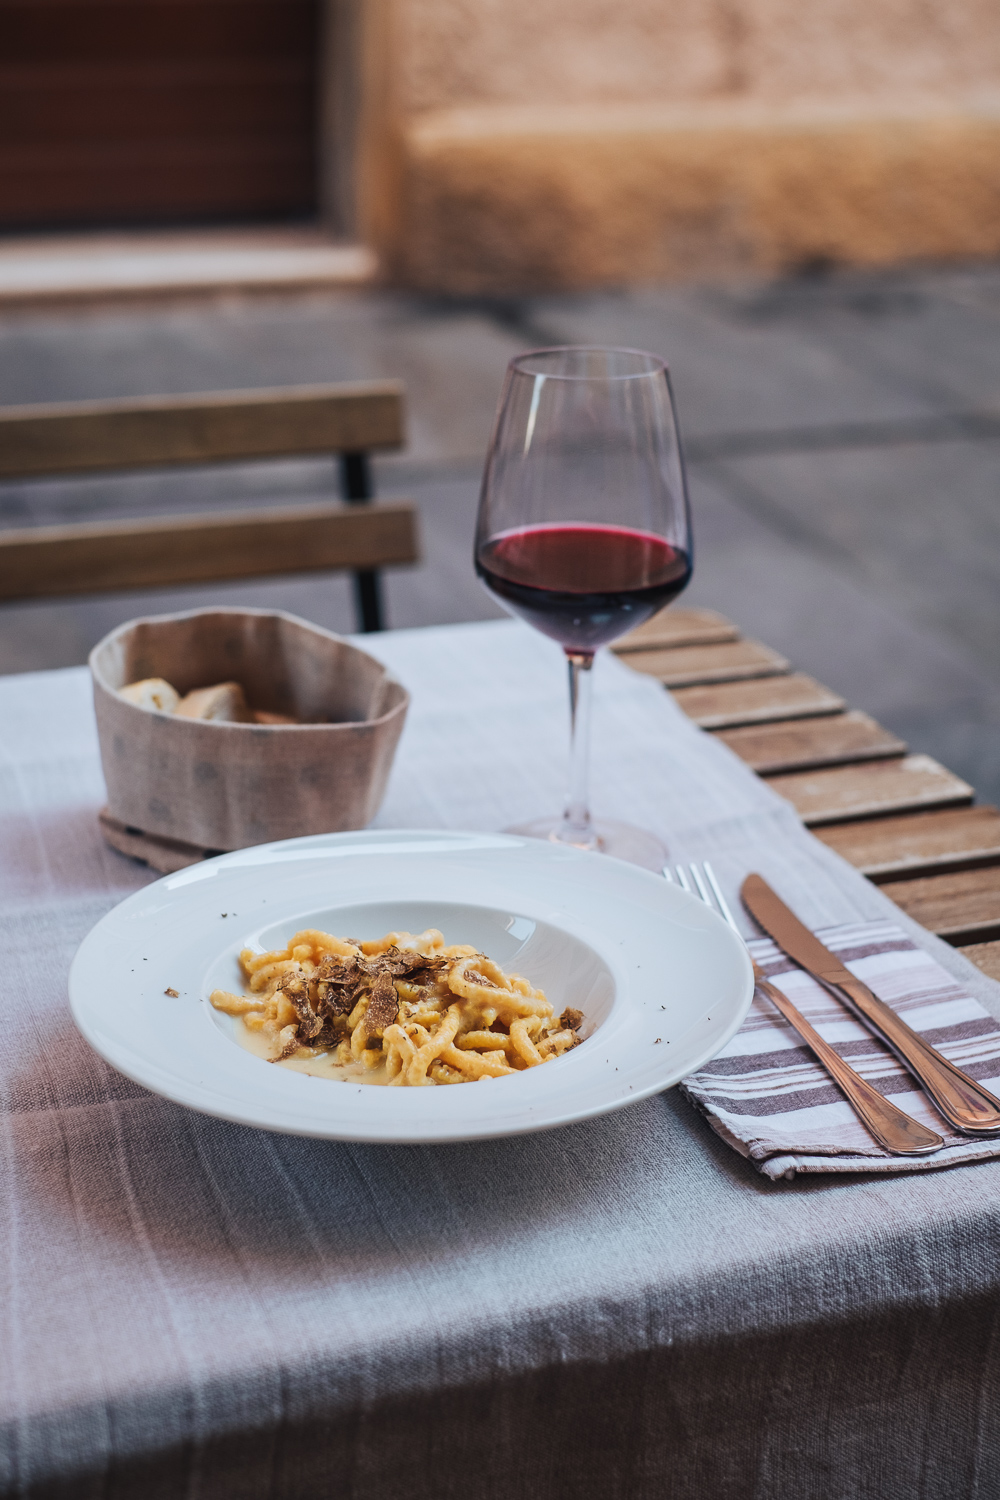 Pasta and red wine in Modena, Italy